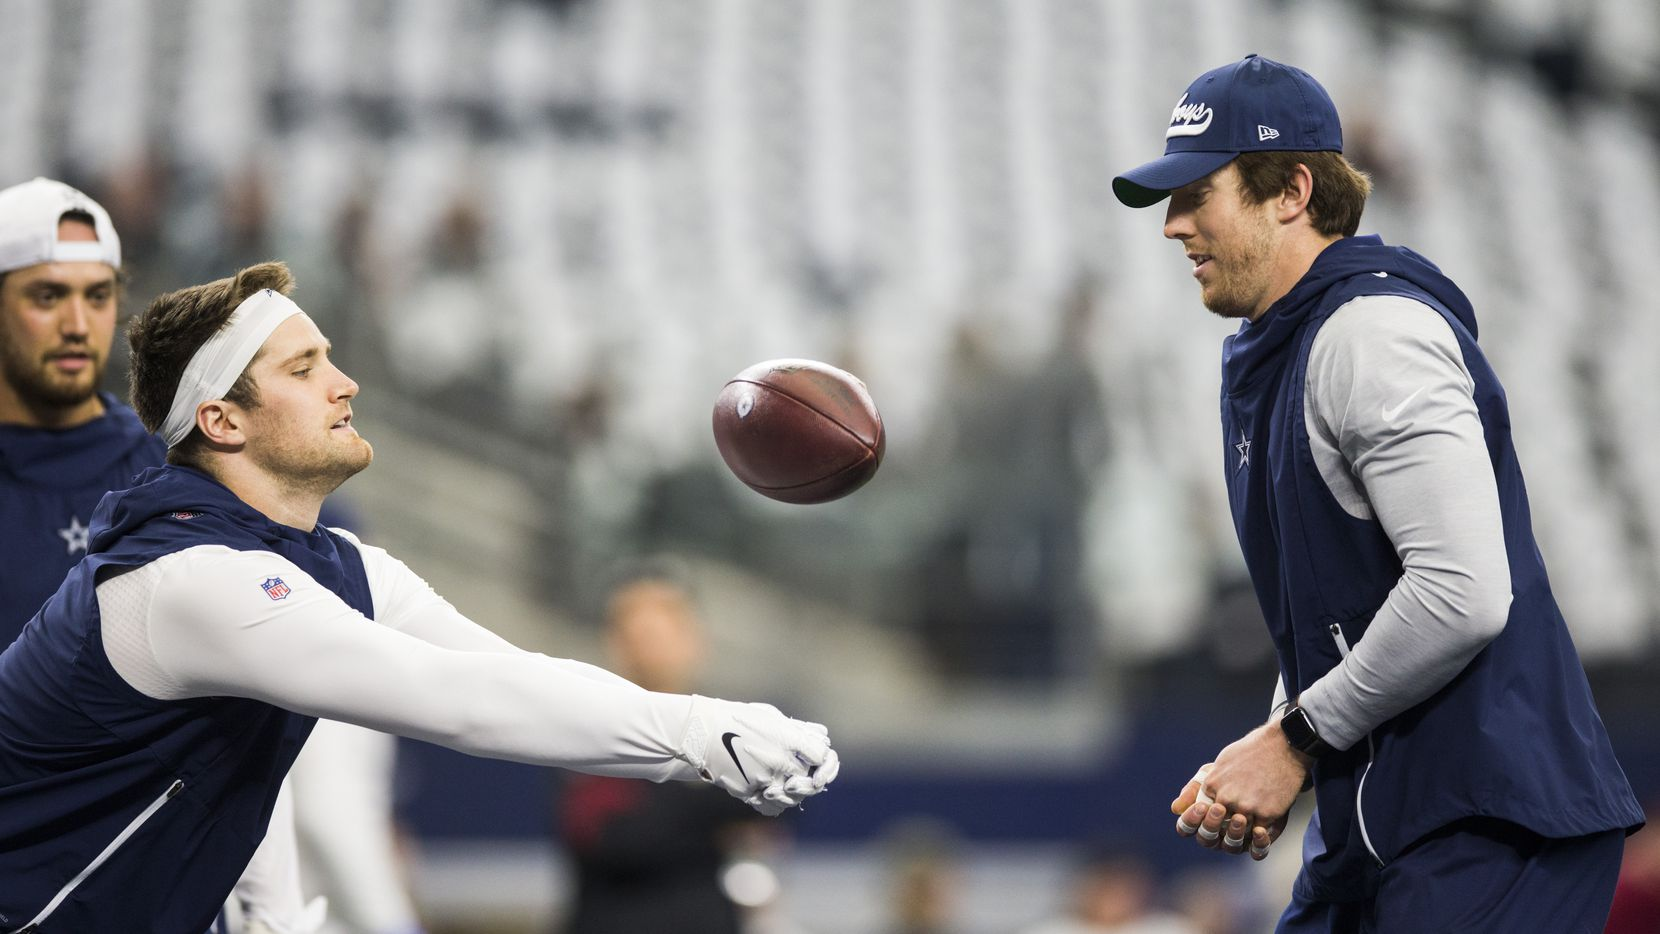 Dallas Cowboys tight end Dalton Schultz (86) and tight end Blake Jarwin (89) play volleyball with a football as they warm up before an NFL game between the Dallas Cowboys and the Washington Redskins on Sunday, December 29, 2019 at AT&T Stadium in Arlington, Texas.